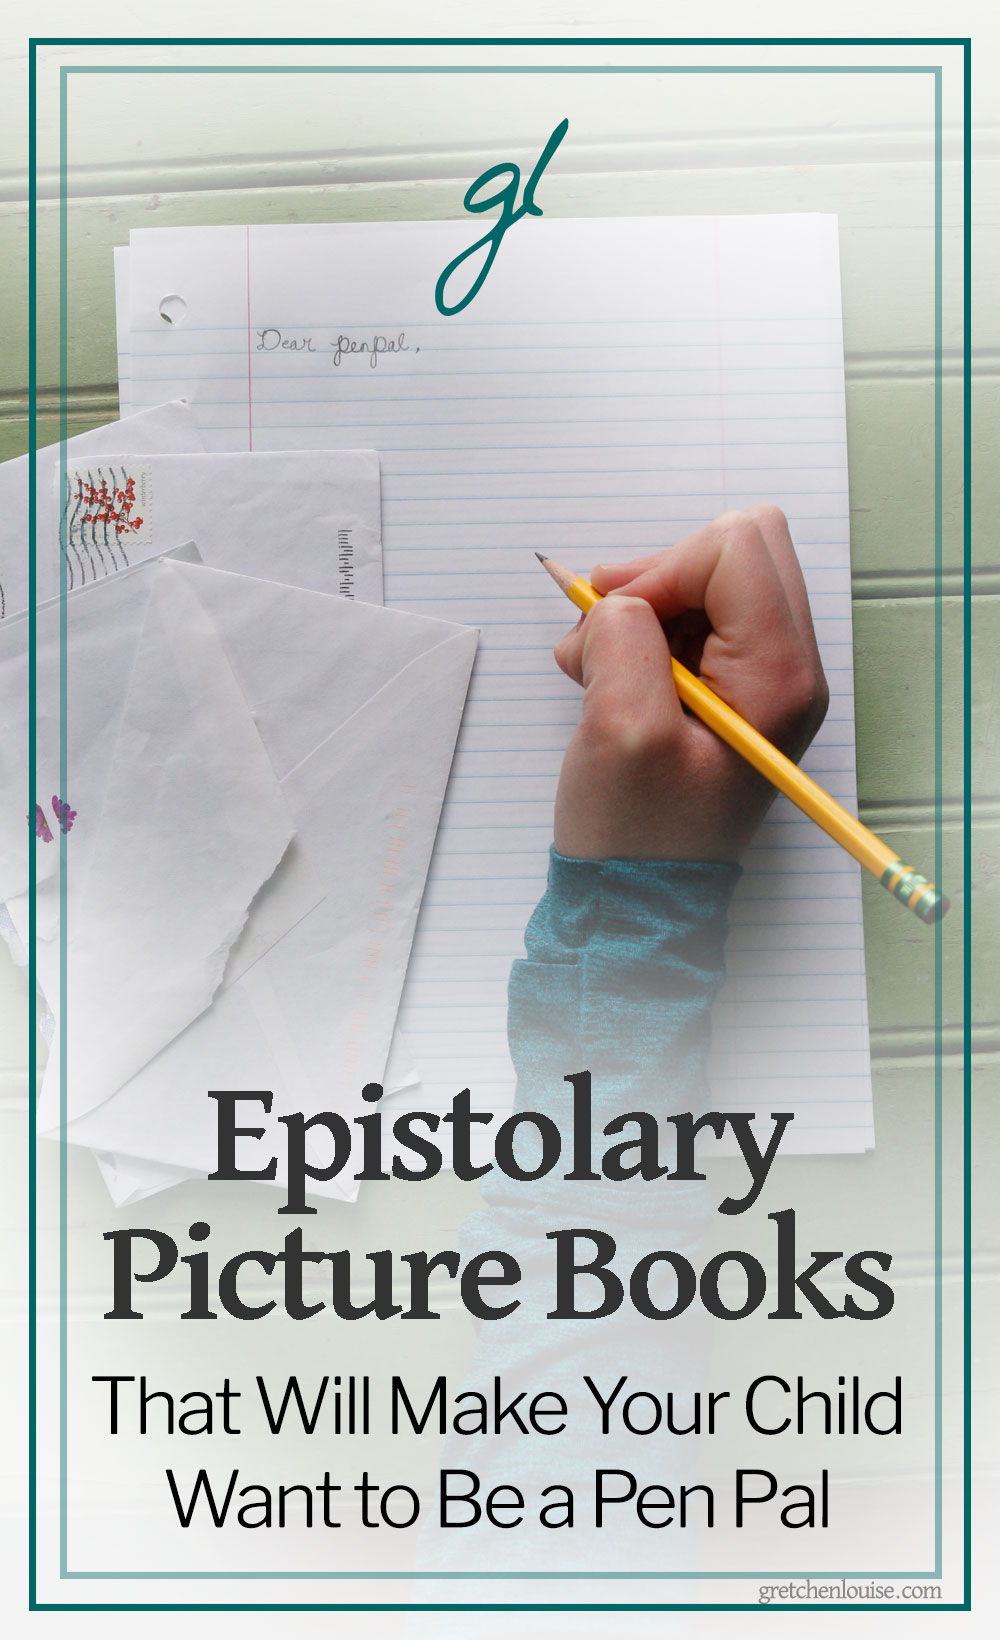 My children think they are indulging their mother's love of all things epistolary when they let me read them picture book after picture book about writing letters. In reality, I'm doing all I can to inspire the lost art of letter writing in the next generation. via @GretLouise